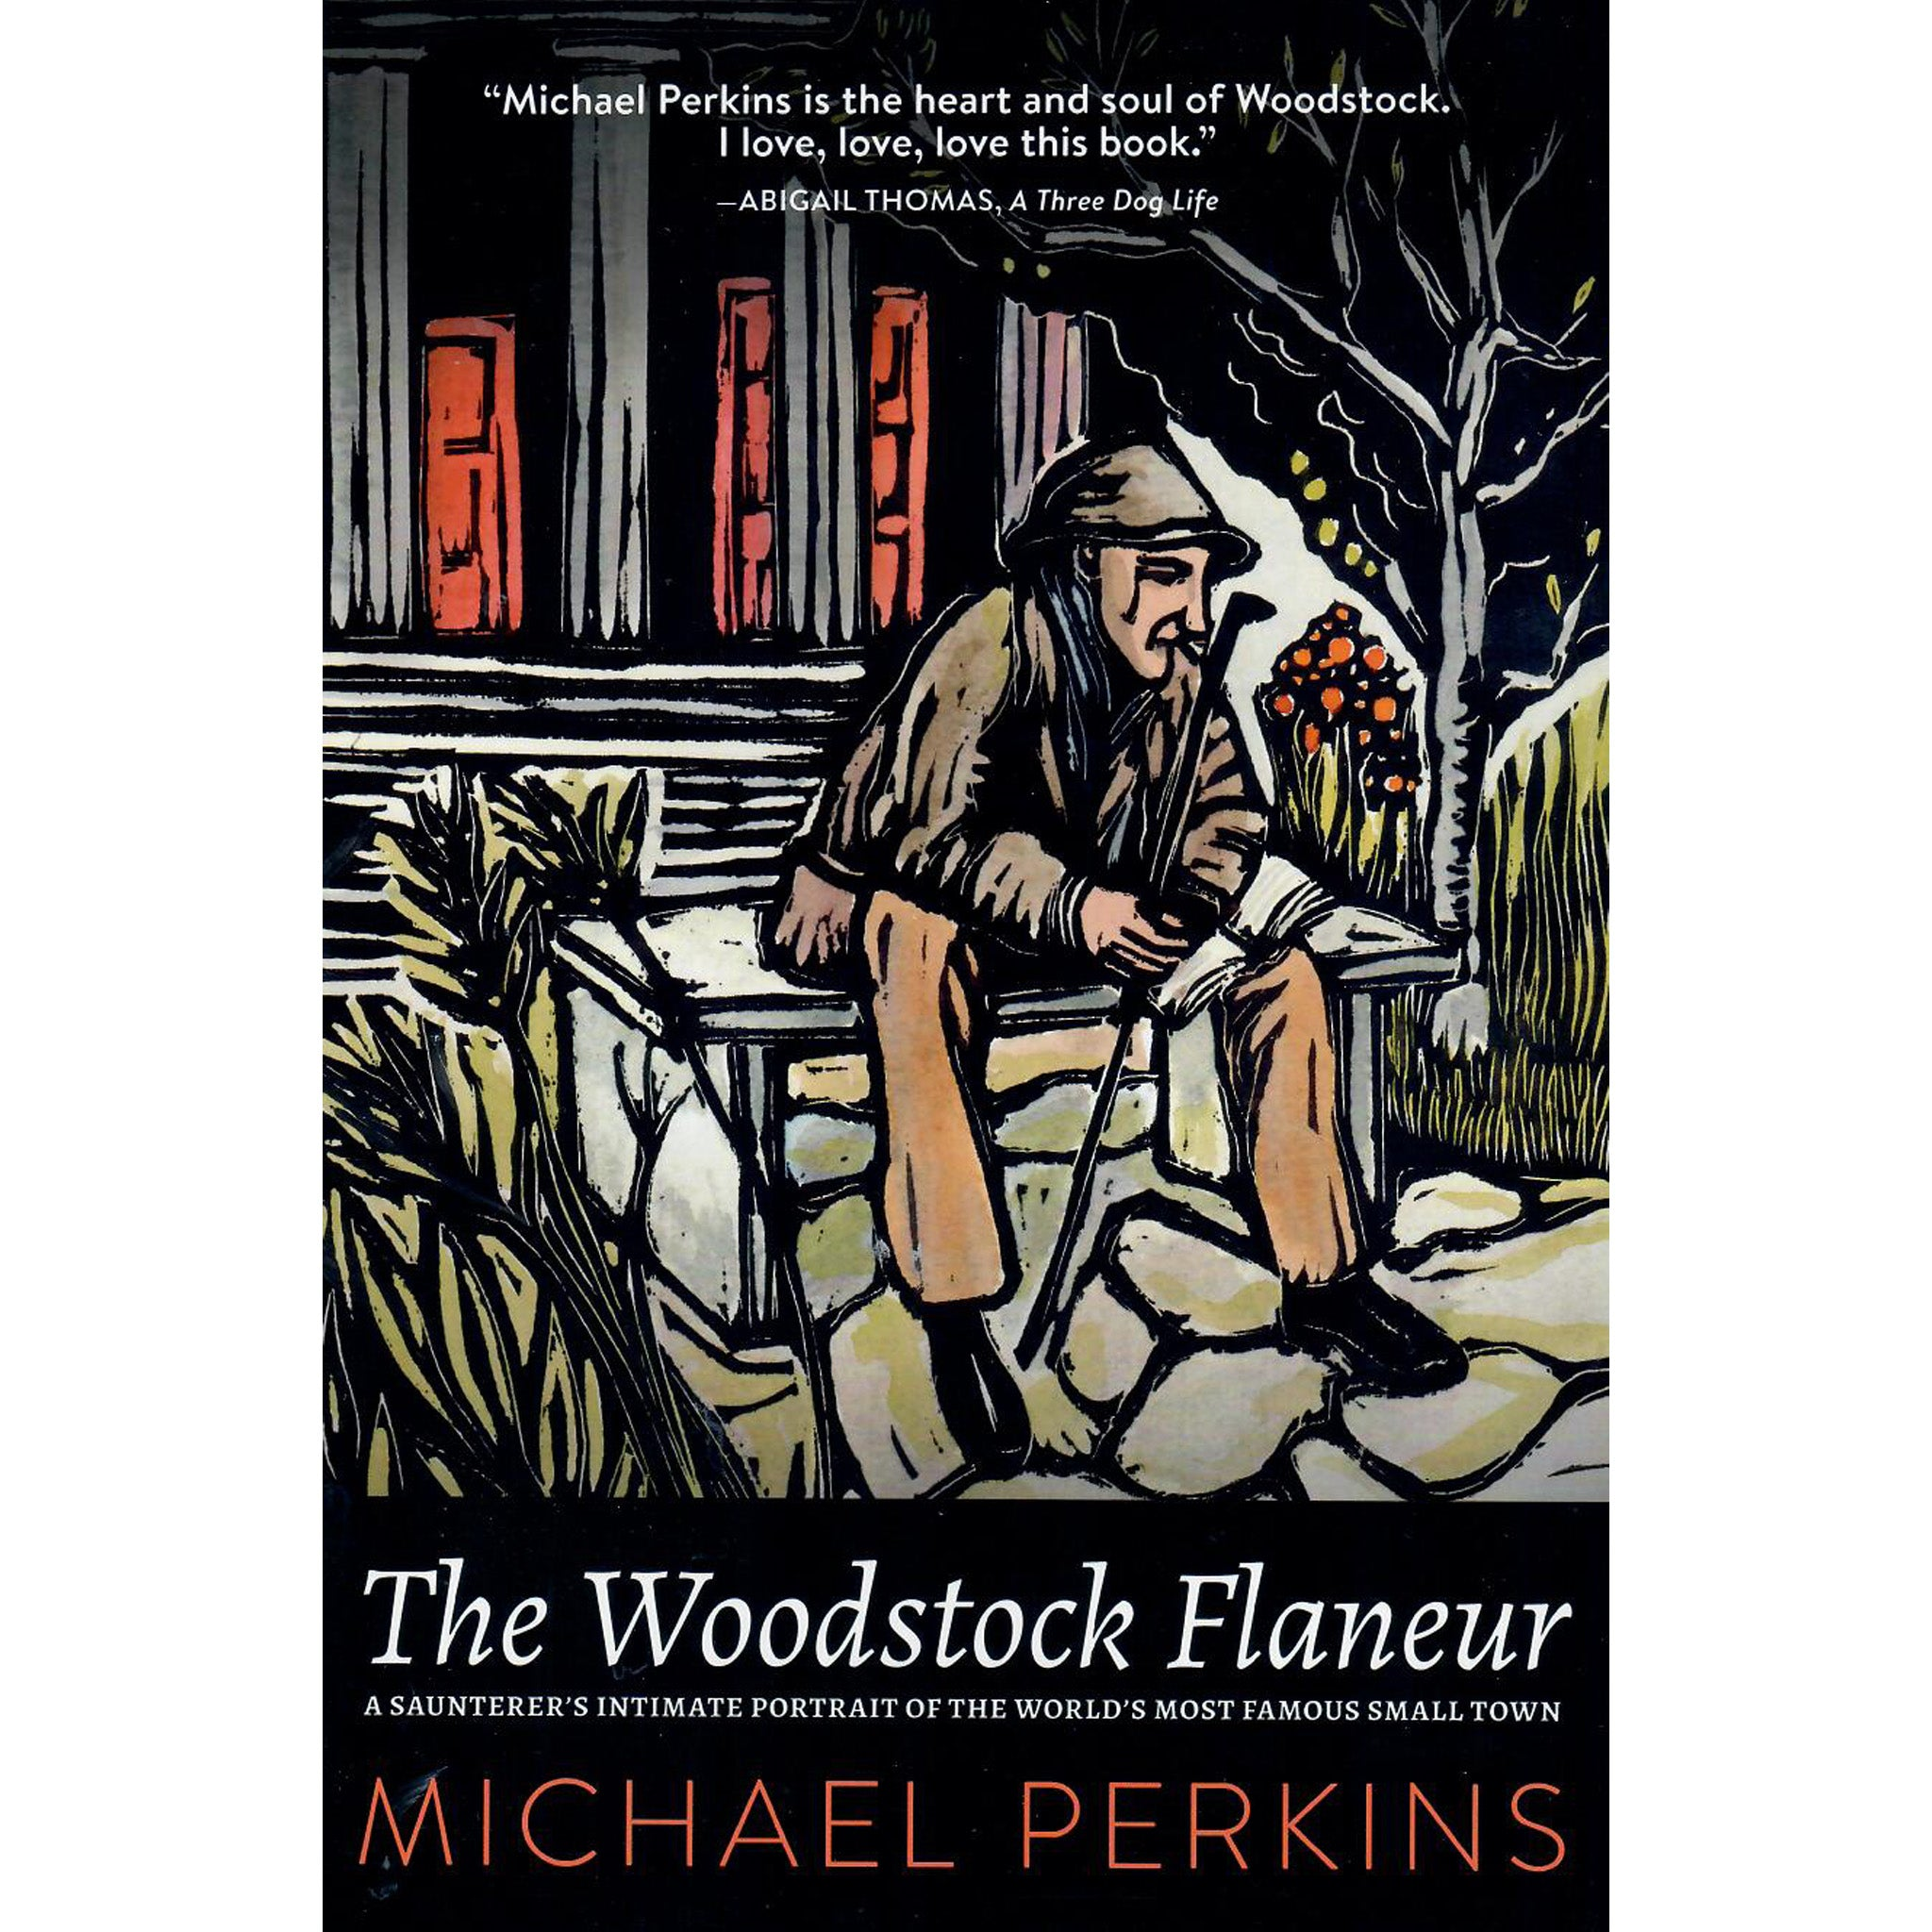 The Woodstock Flaneur